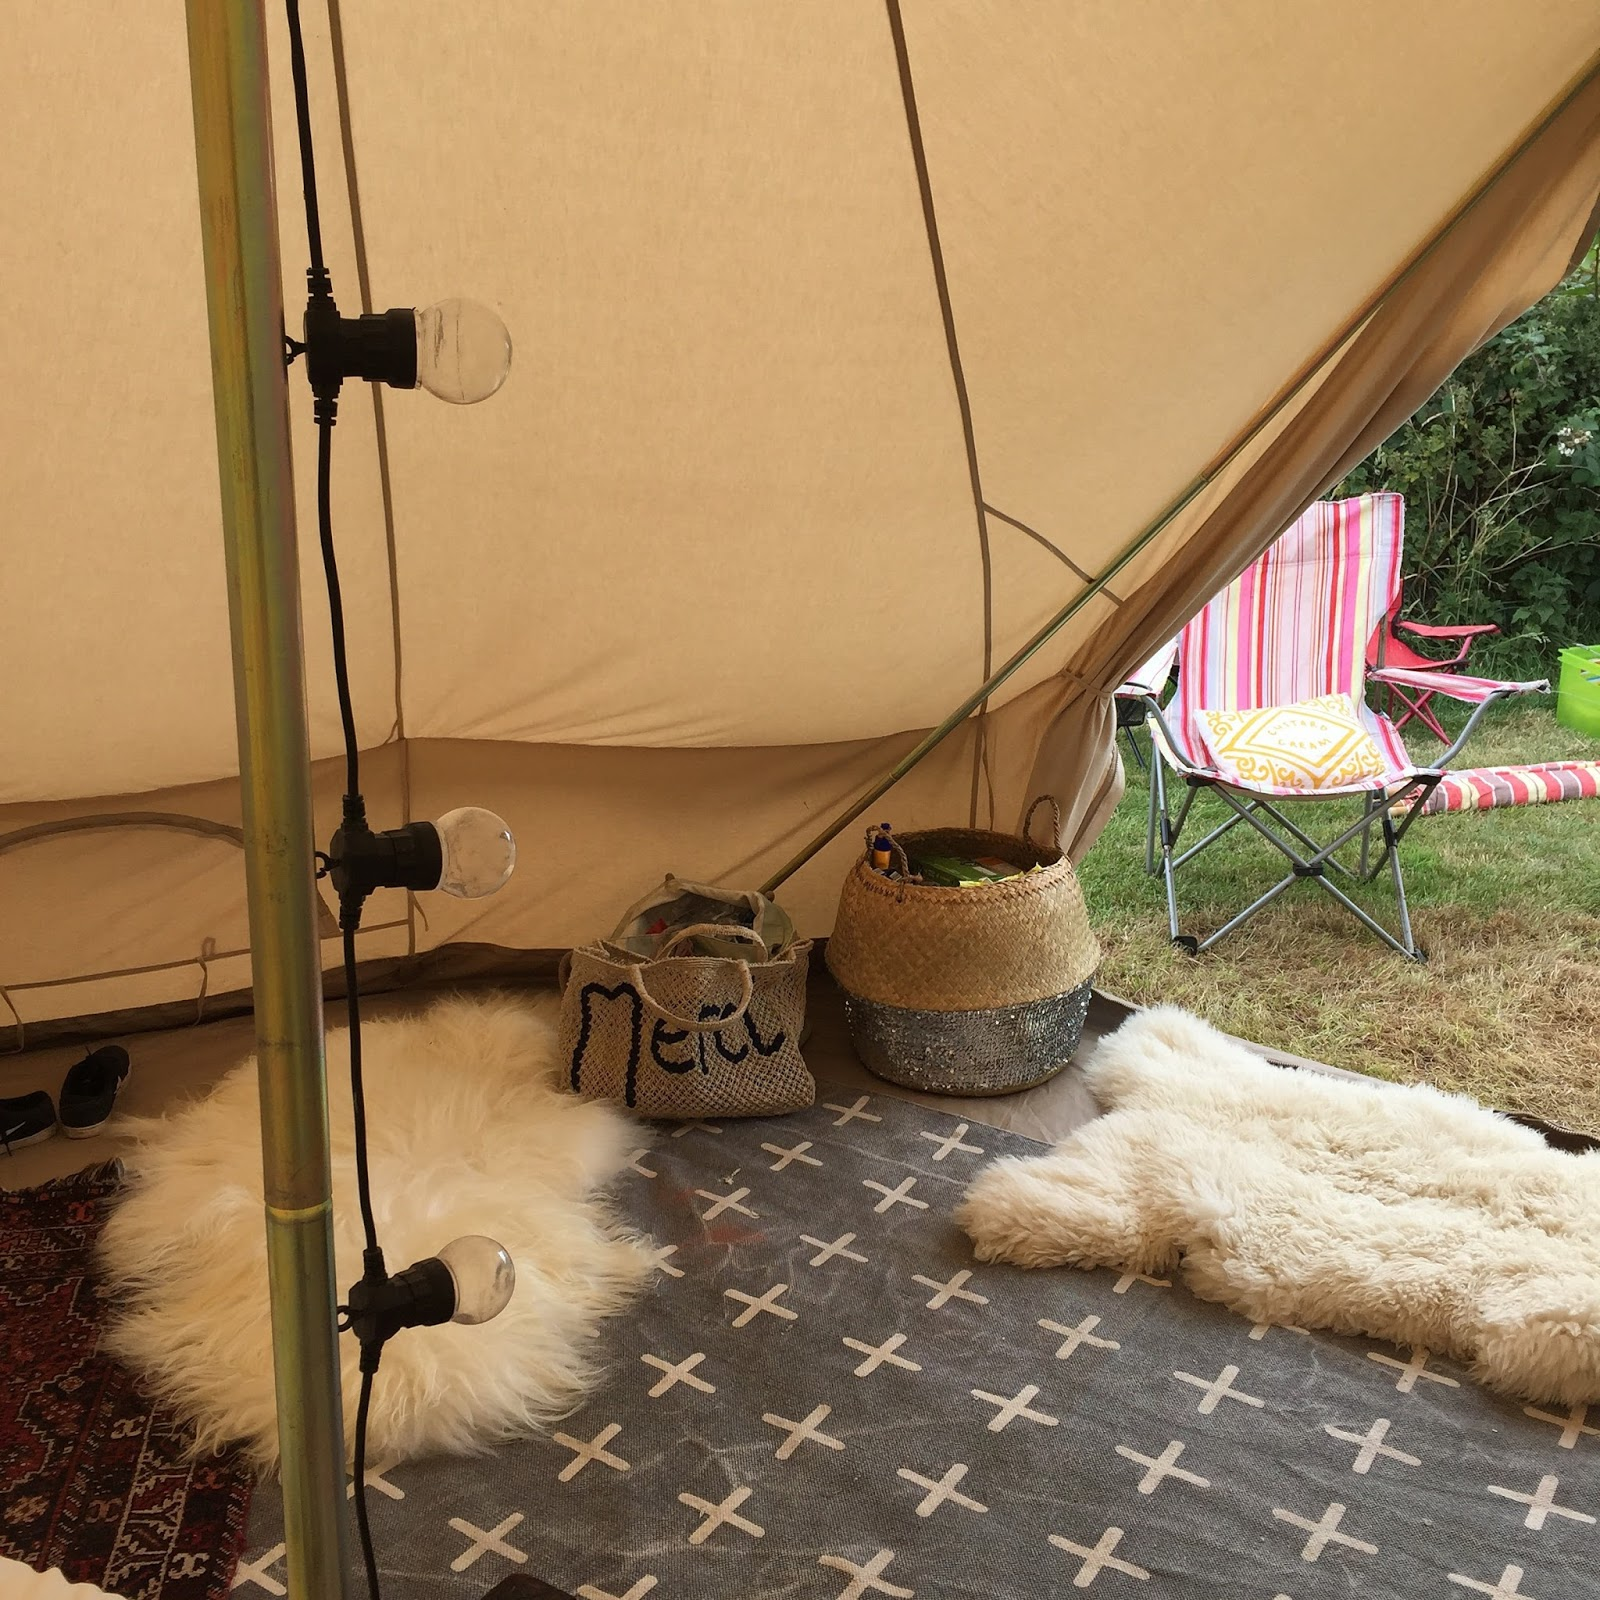 Adding rugs immediately makes the tent look and feel cosy warm and homely. & Huddle Inside u0026 Out: From Camping to Glamping - 4 Tips